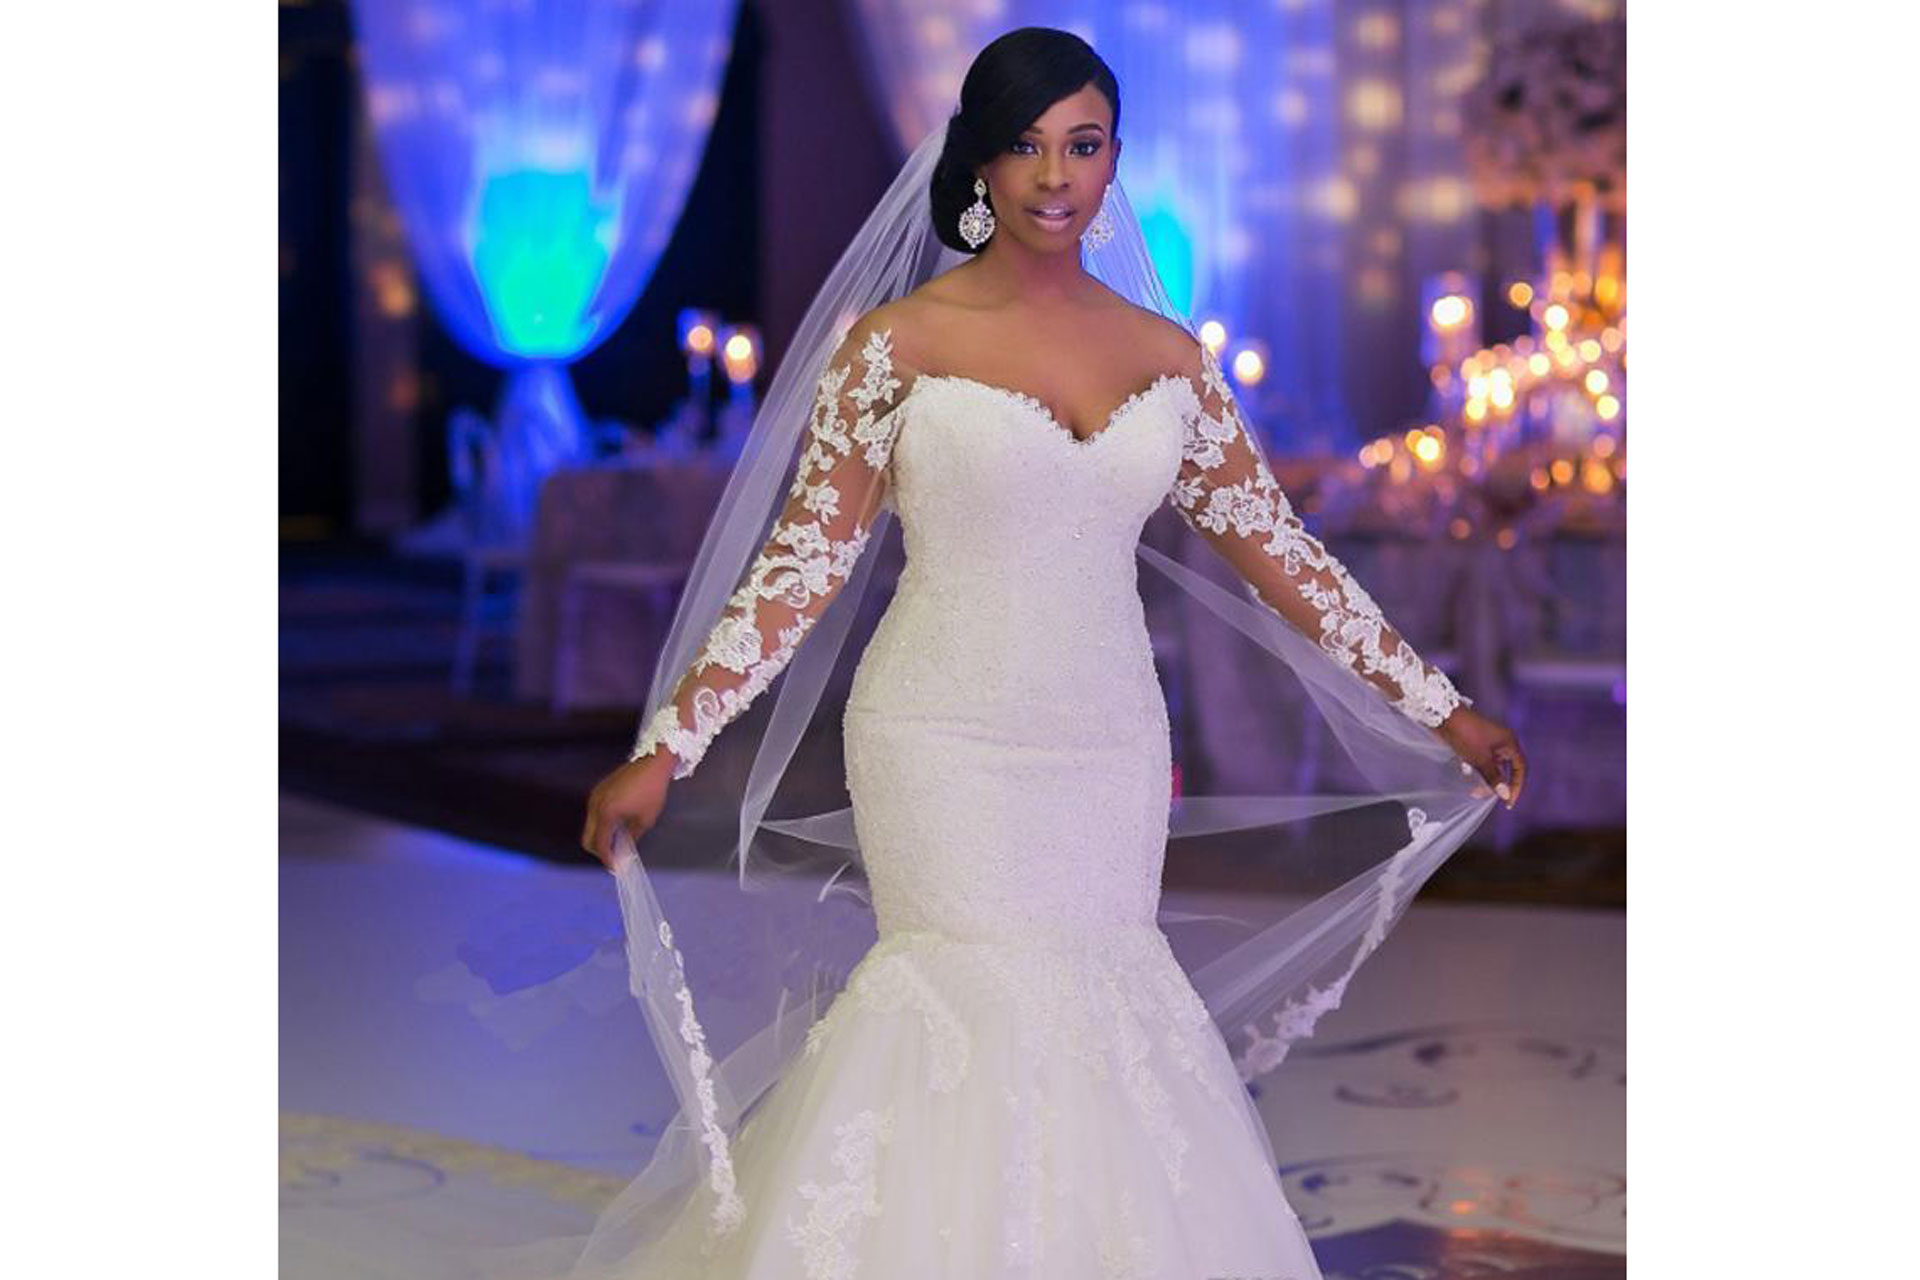 Wedding Gown Designs For Chubby: How To Hide Specific Body Parts In Your Wedding Gown